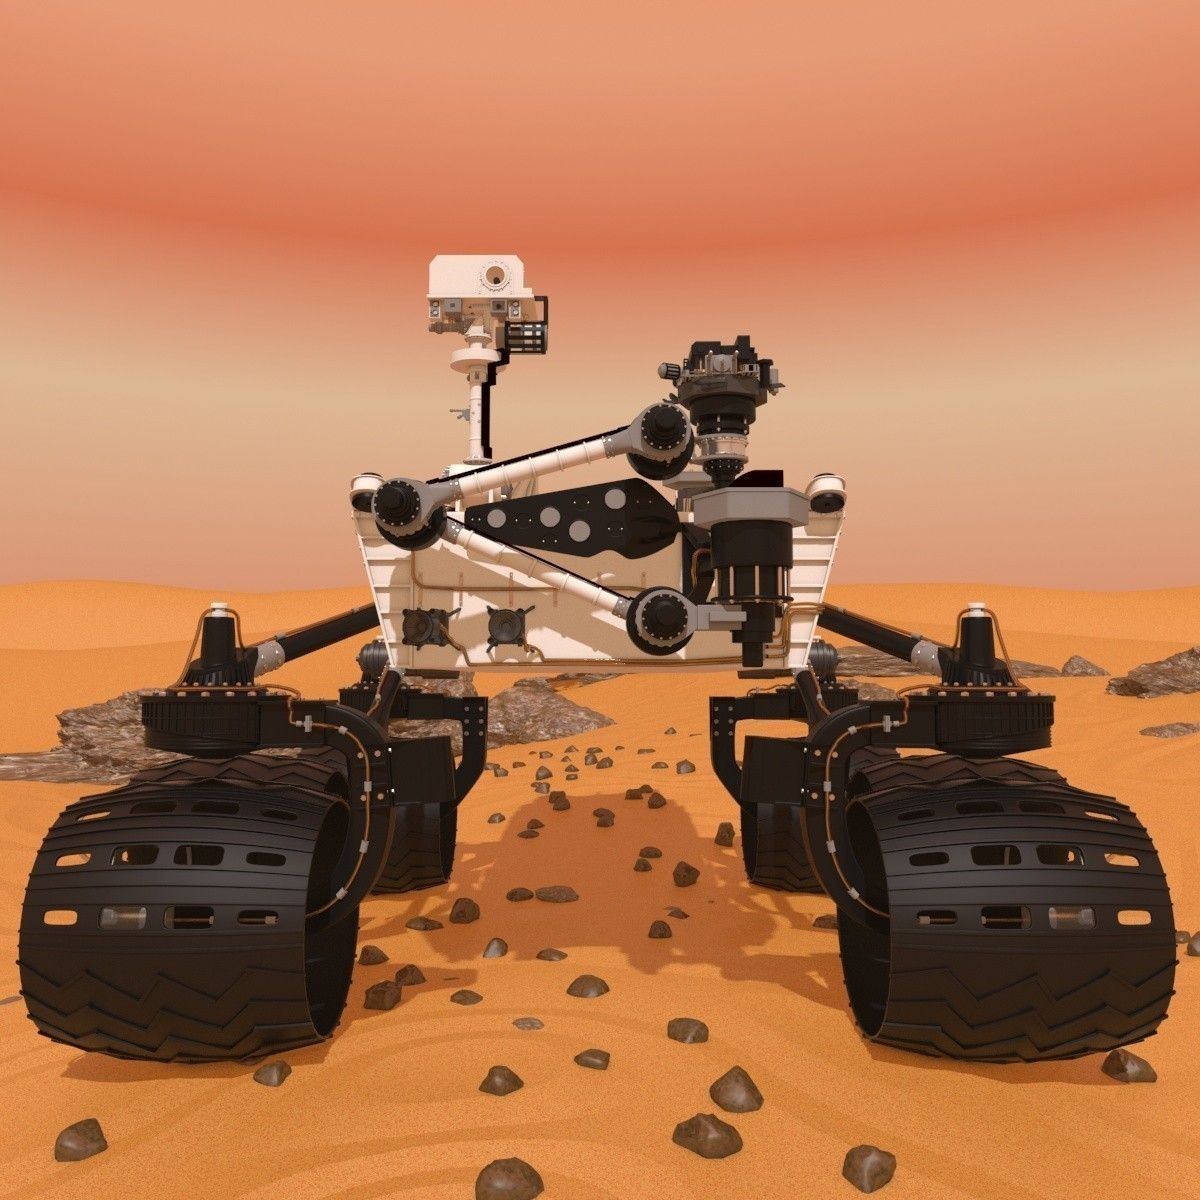 curiosity rover scale model - photo #17